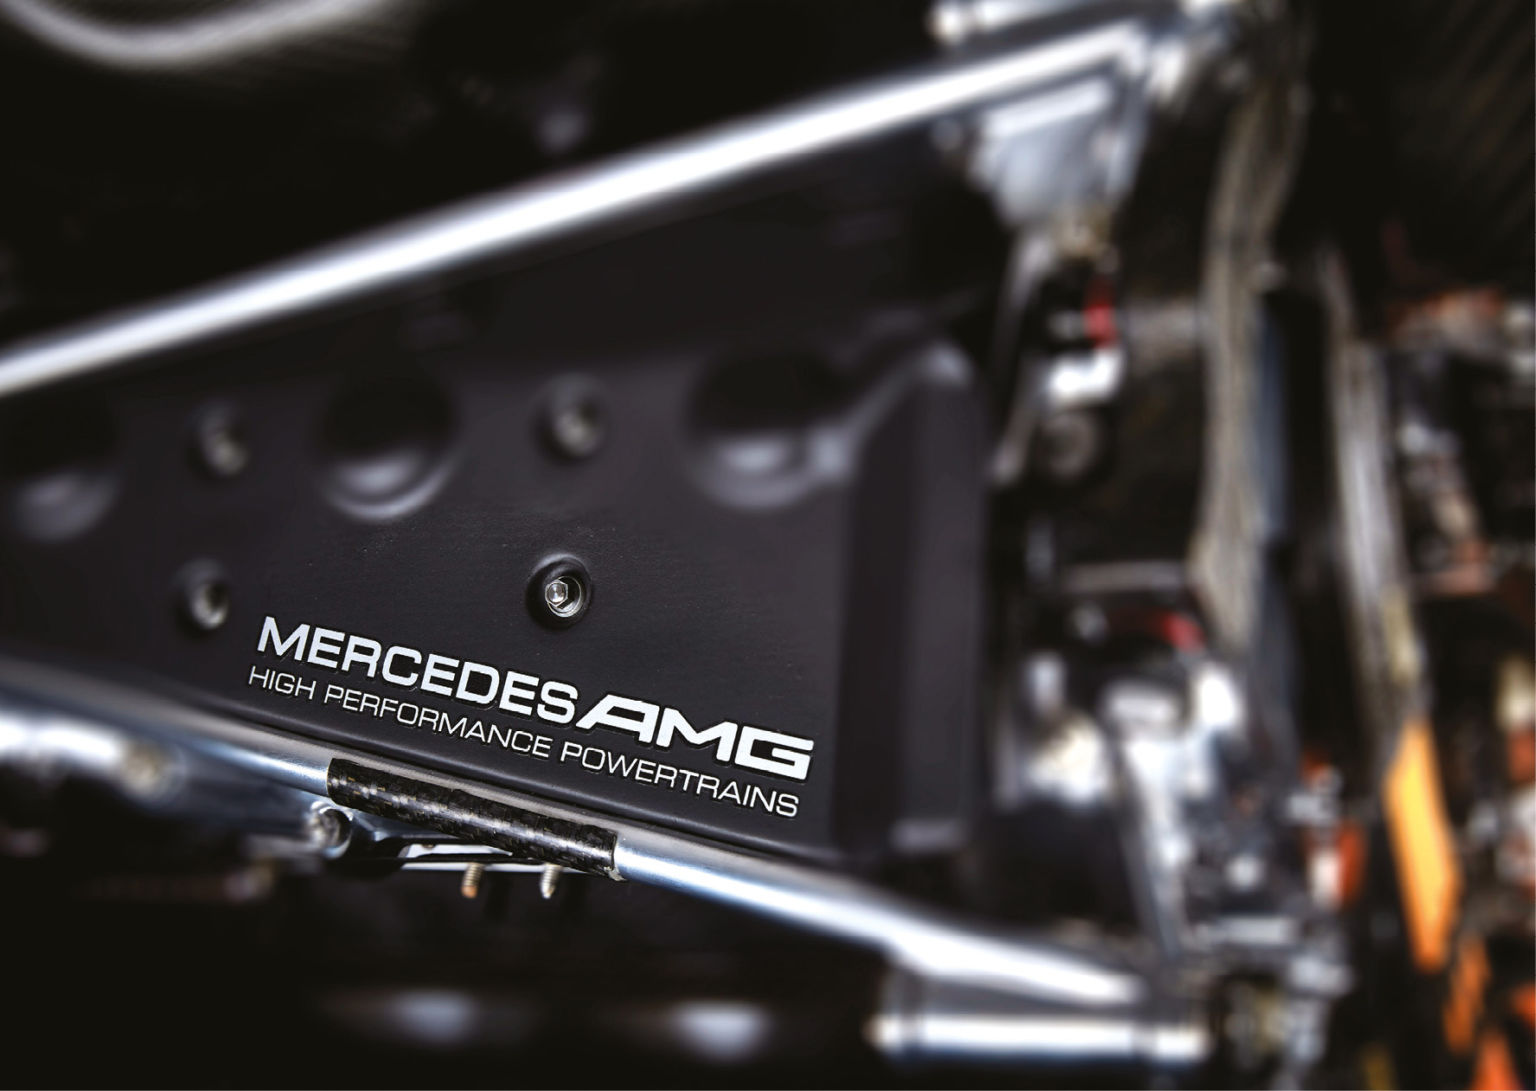 The Mercedes V6 turbo is the most efficient F1 engine in history, and has outgunned its rivals